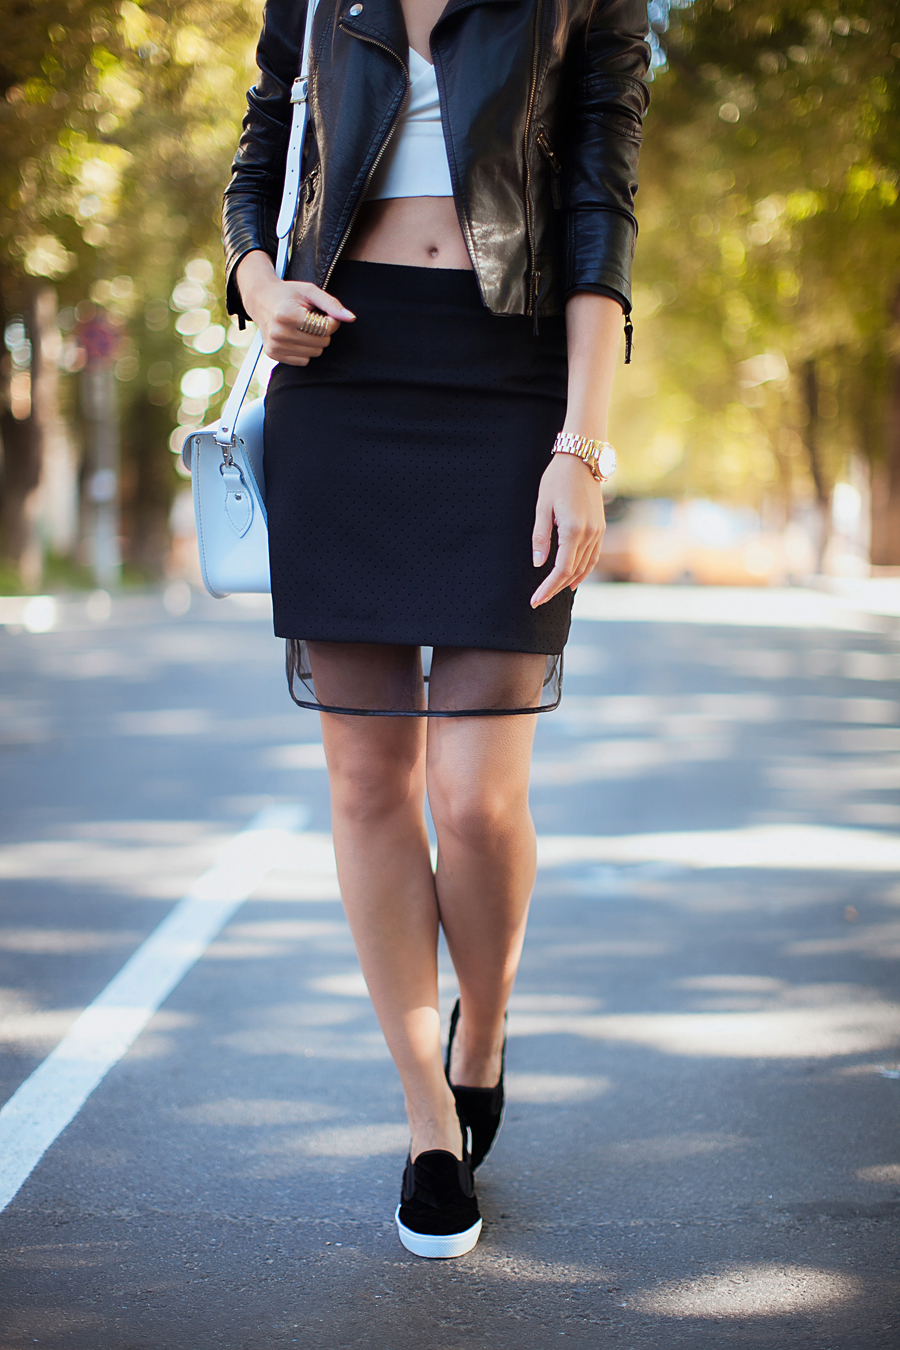 slipons-skirt-outfit